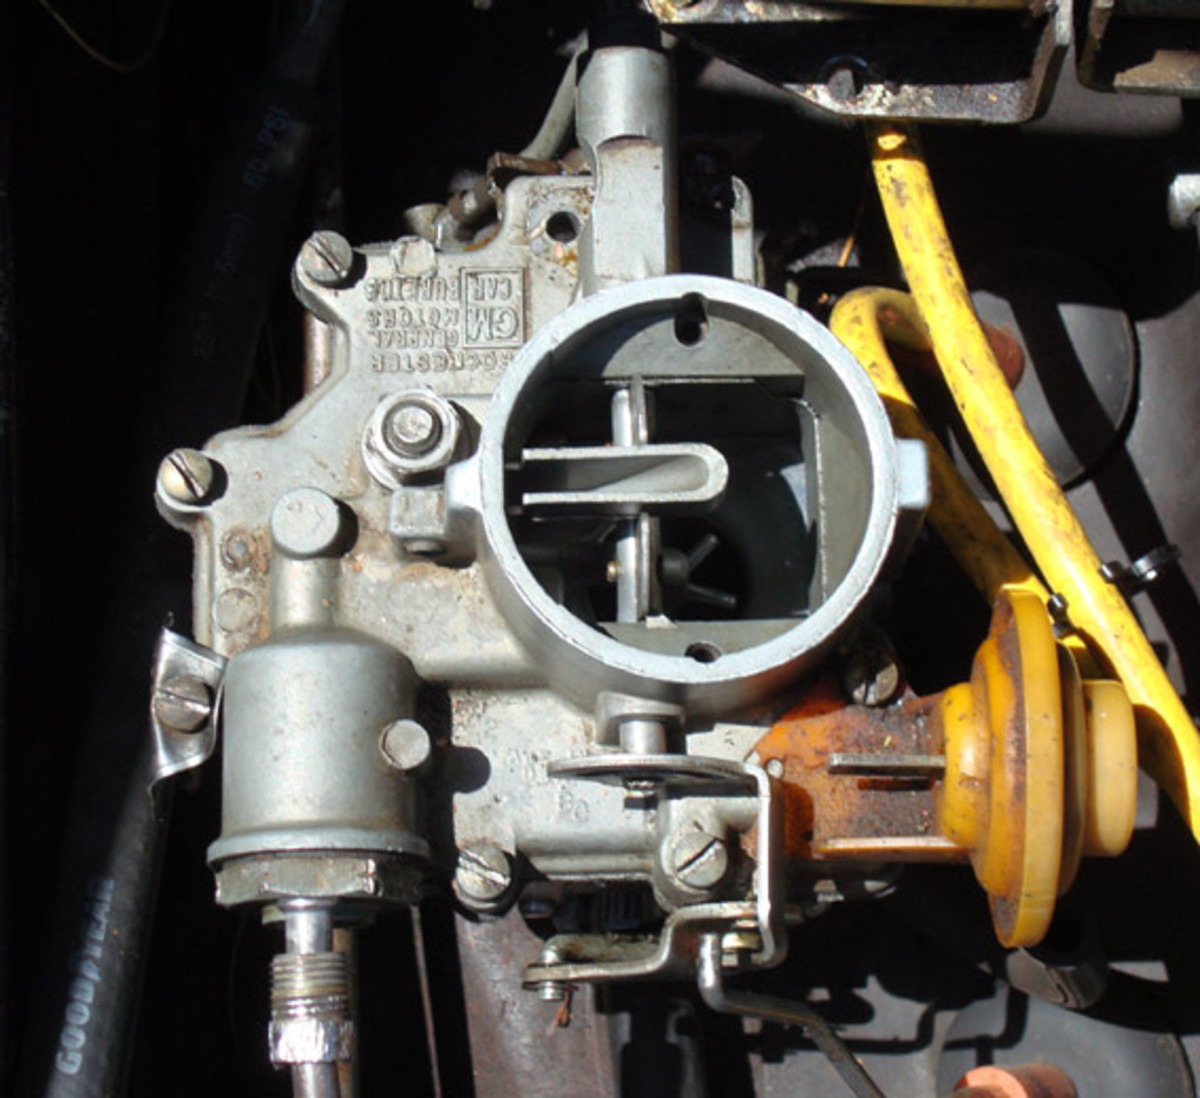 Cleaning the Chevrolet Corvair Carburetor